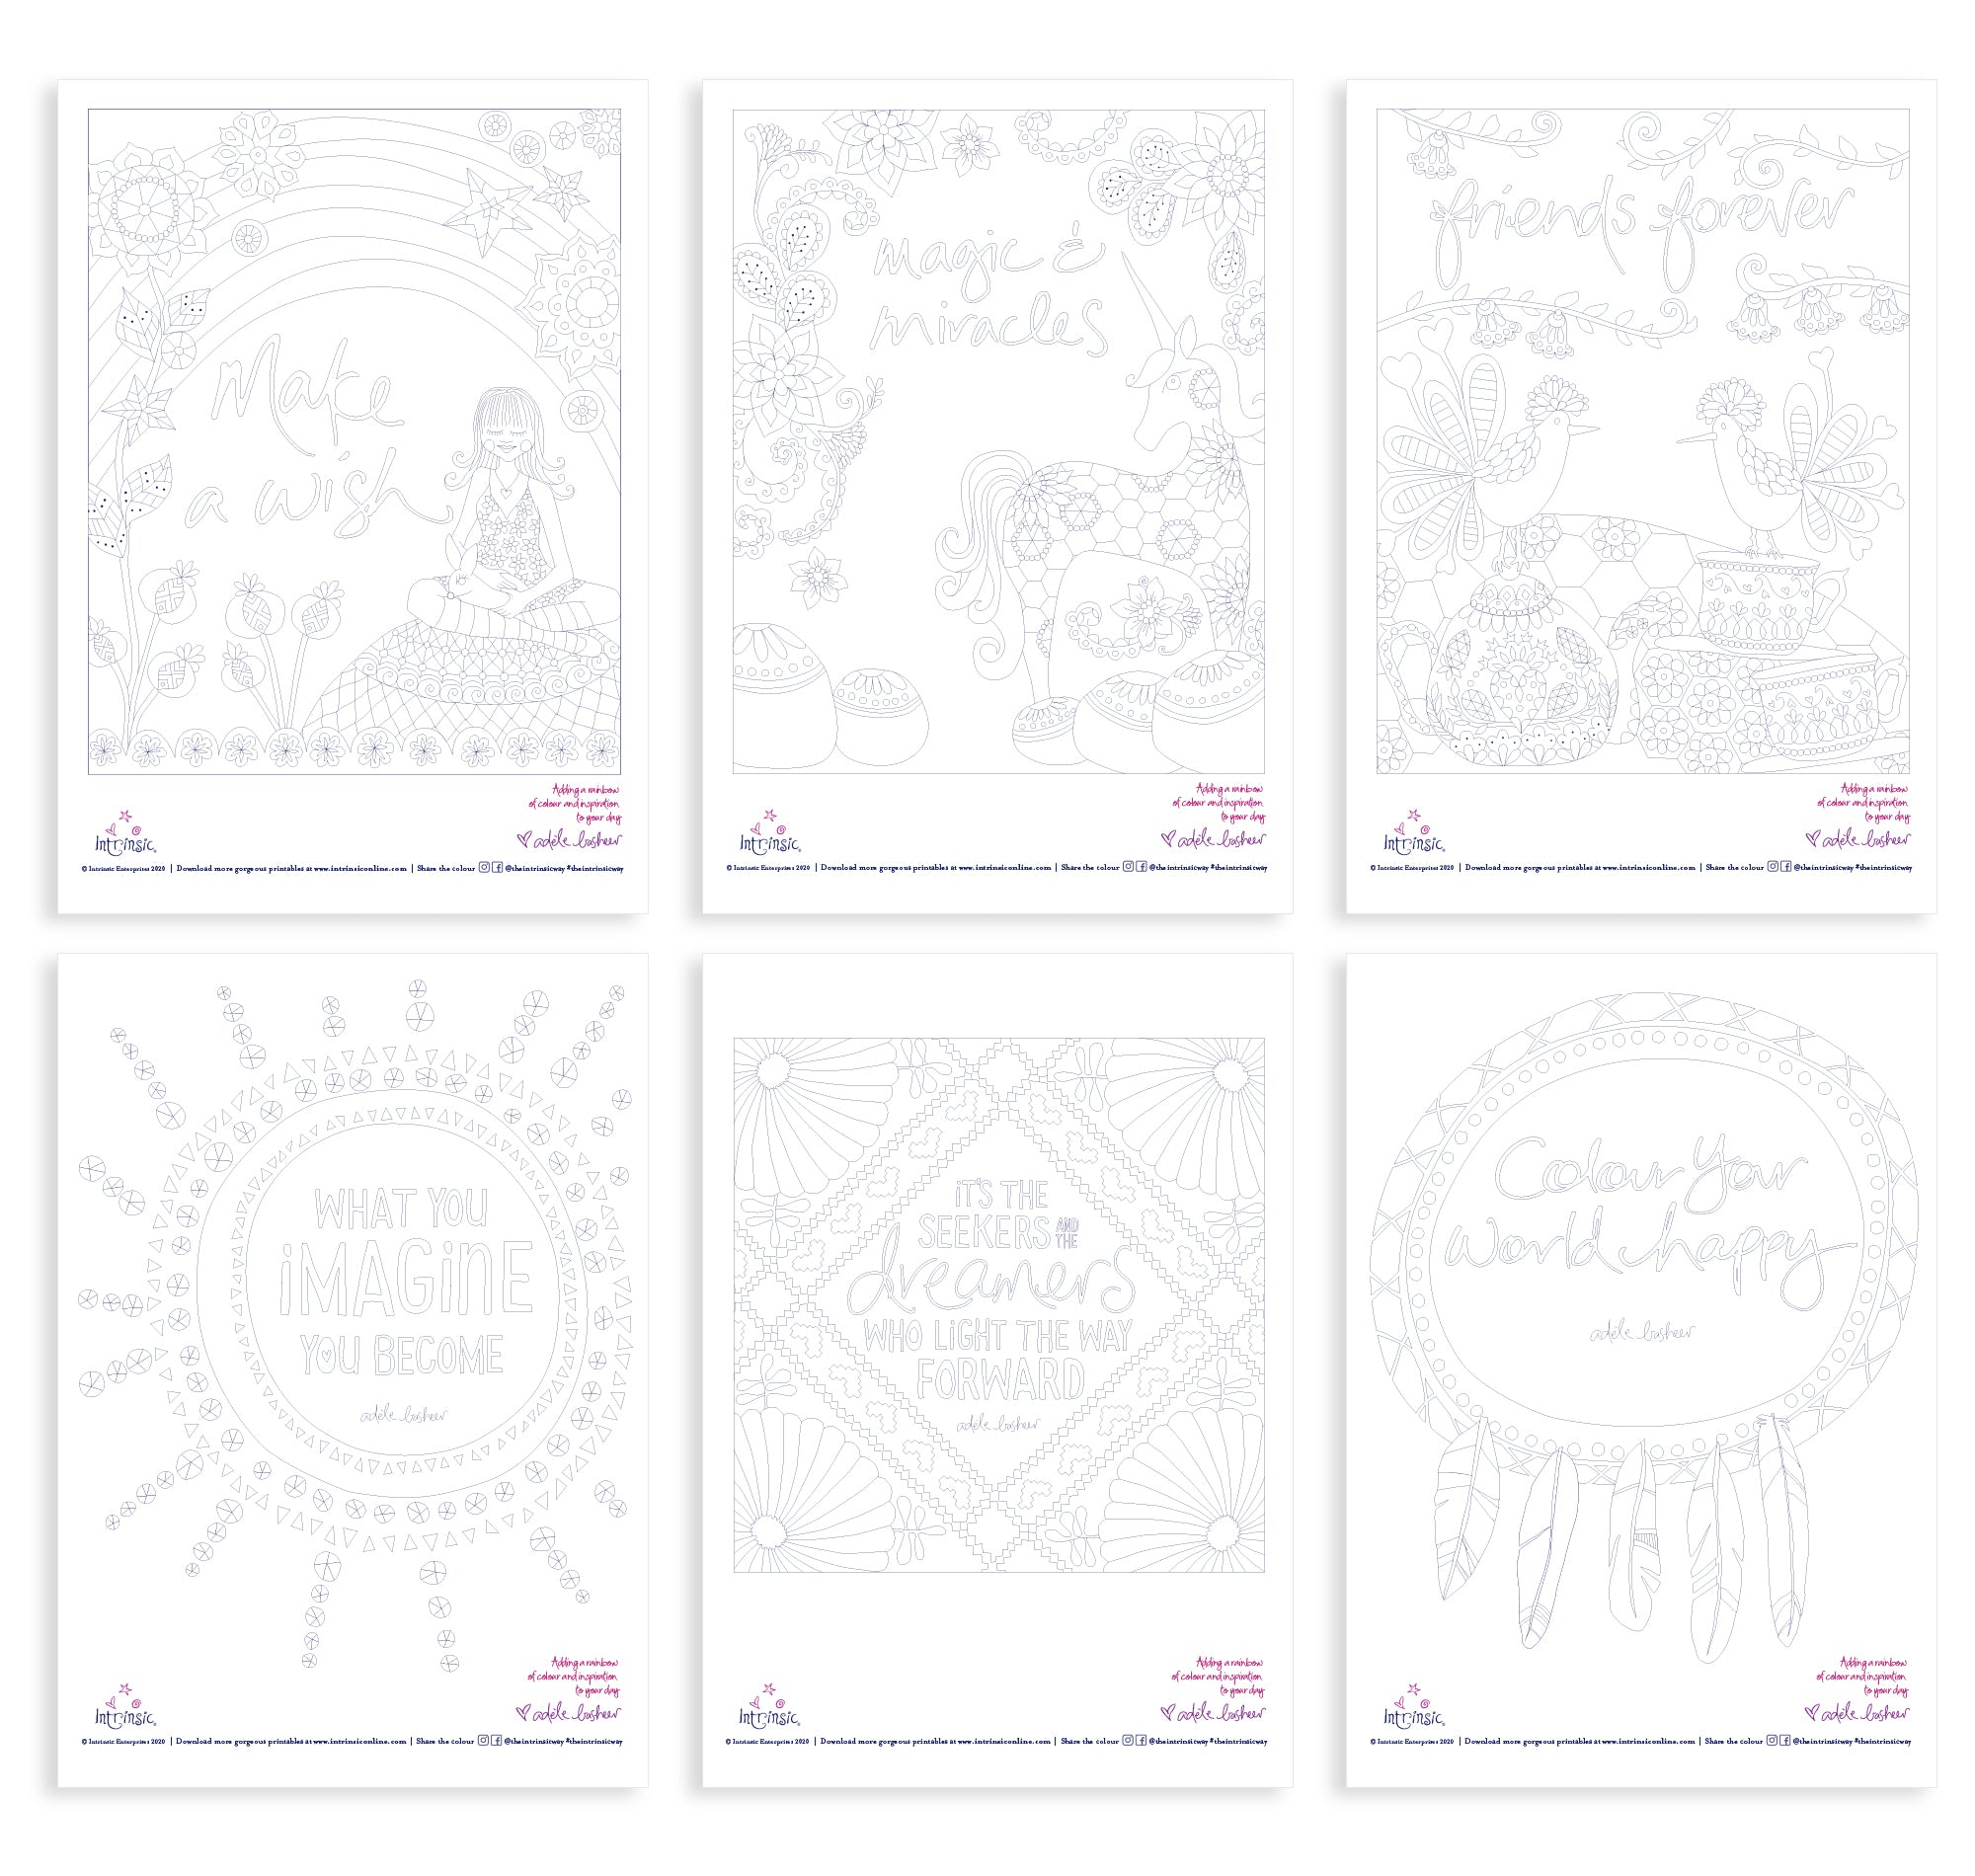 Intrinsic Mindfulness Colouring In Printables, New Designs